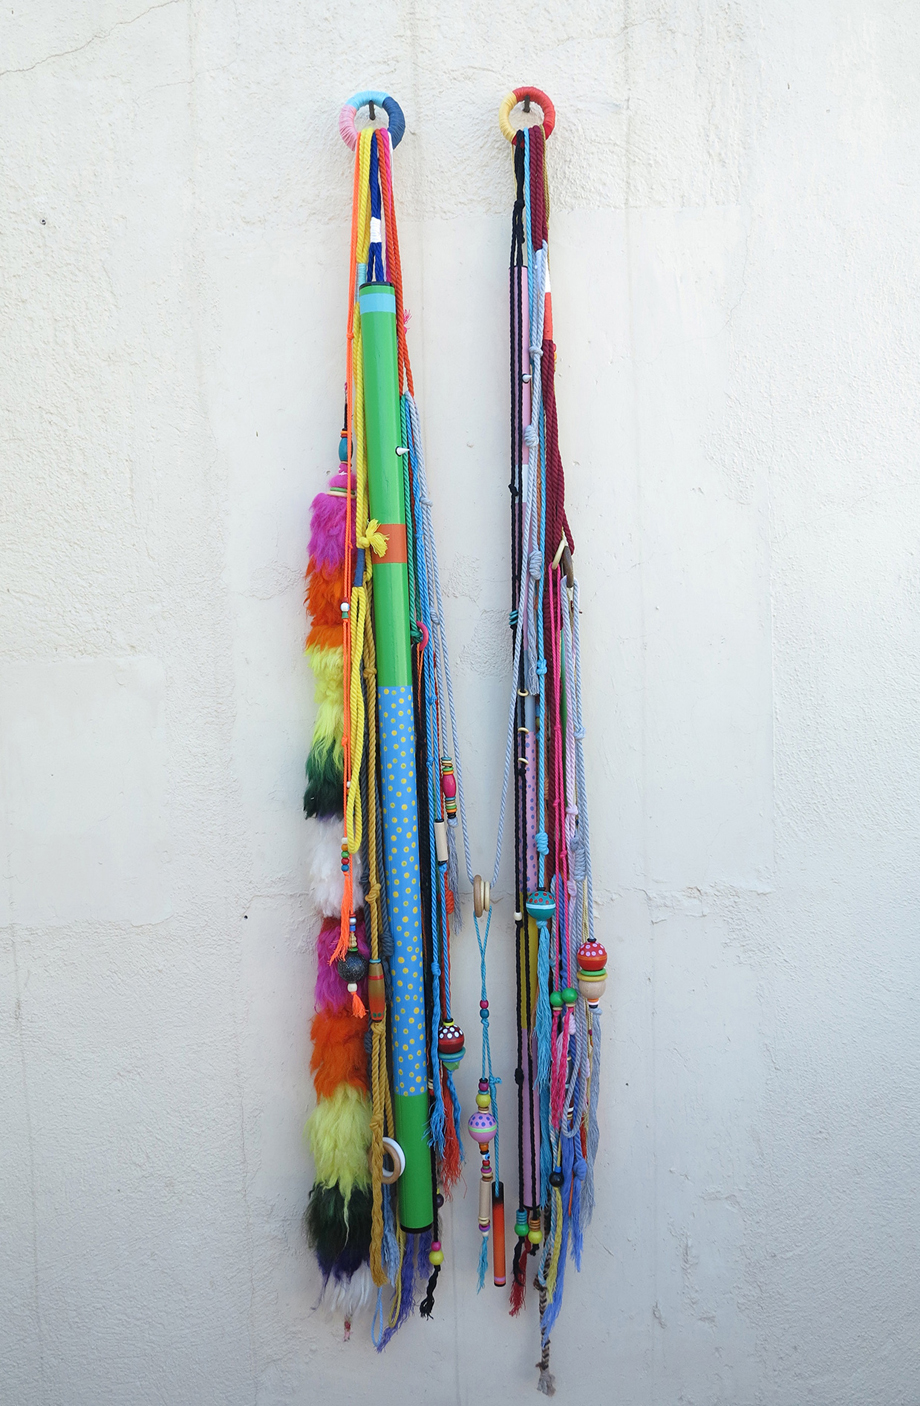 SCULPTURE. SERIE NATURALEZA ABSTRACTA. RITUAL. MIX MEDIA. COTTON STRINGS, WOOD BEADS AND ACRYLIC ON WOOD. MEASURES 30X160CM.